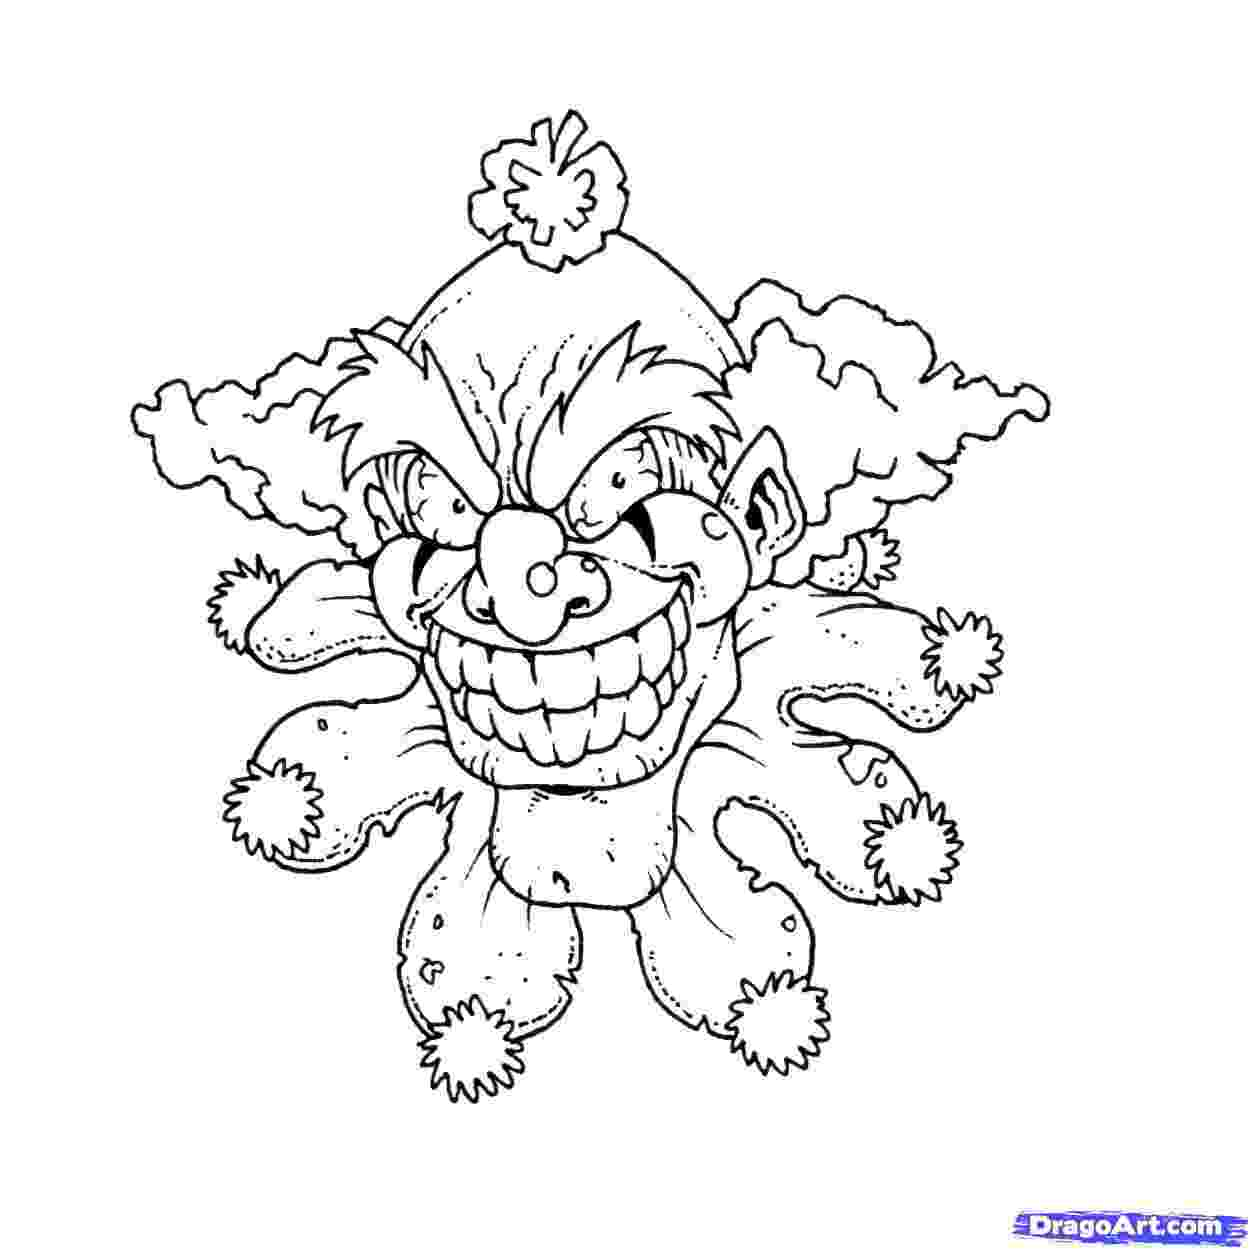 coloring pages of scary clowns colclown coloring pages 253623 icp coloring pages scary pages clowns of coloring